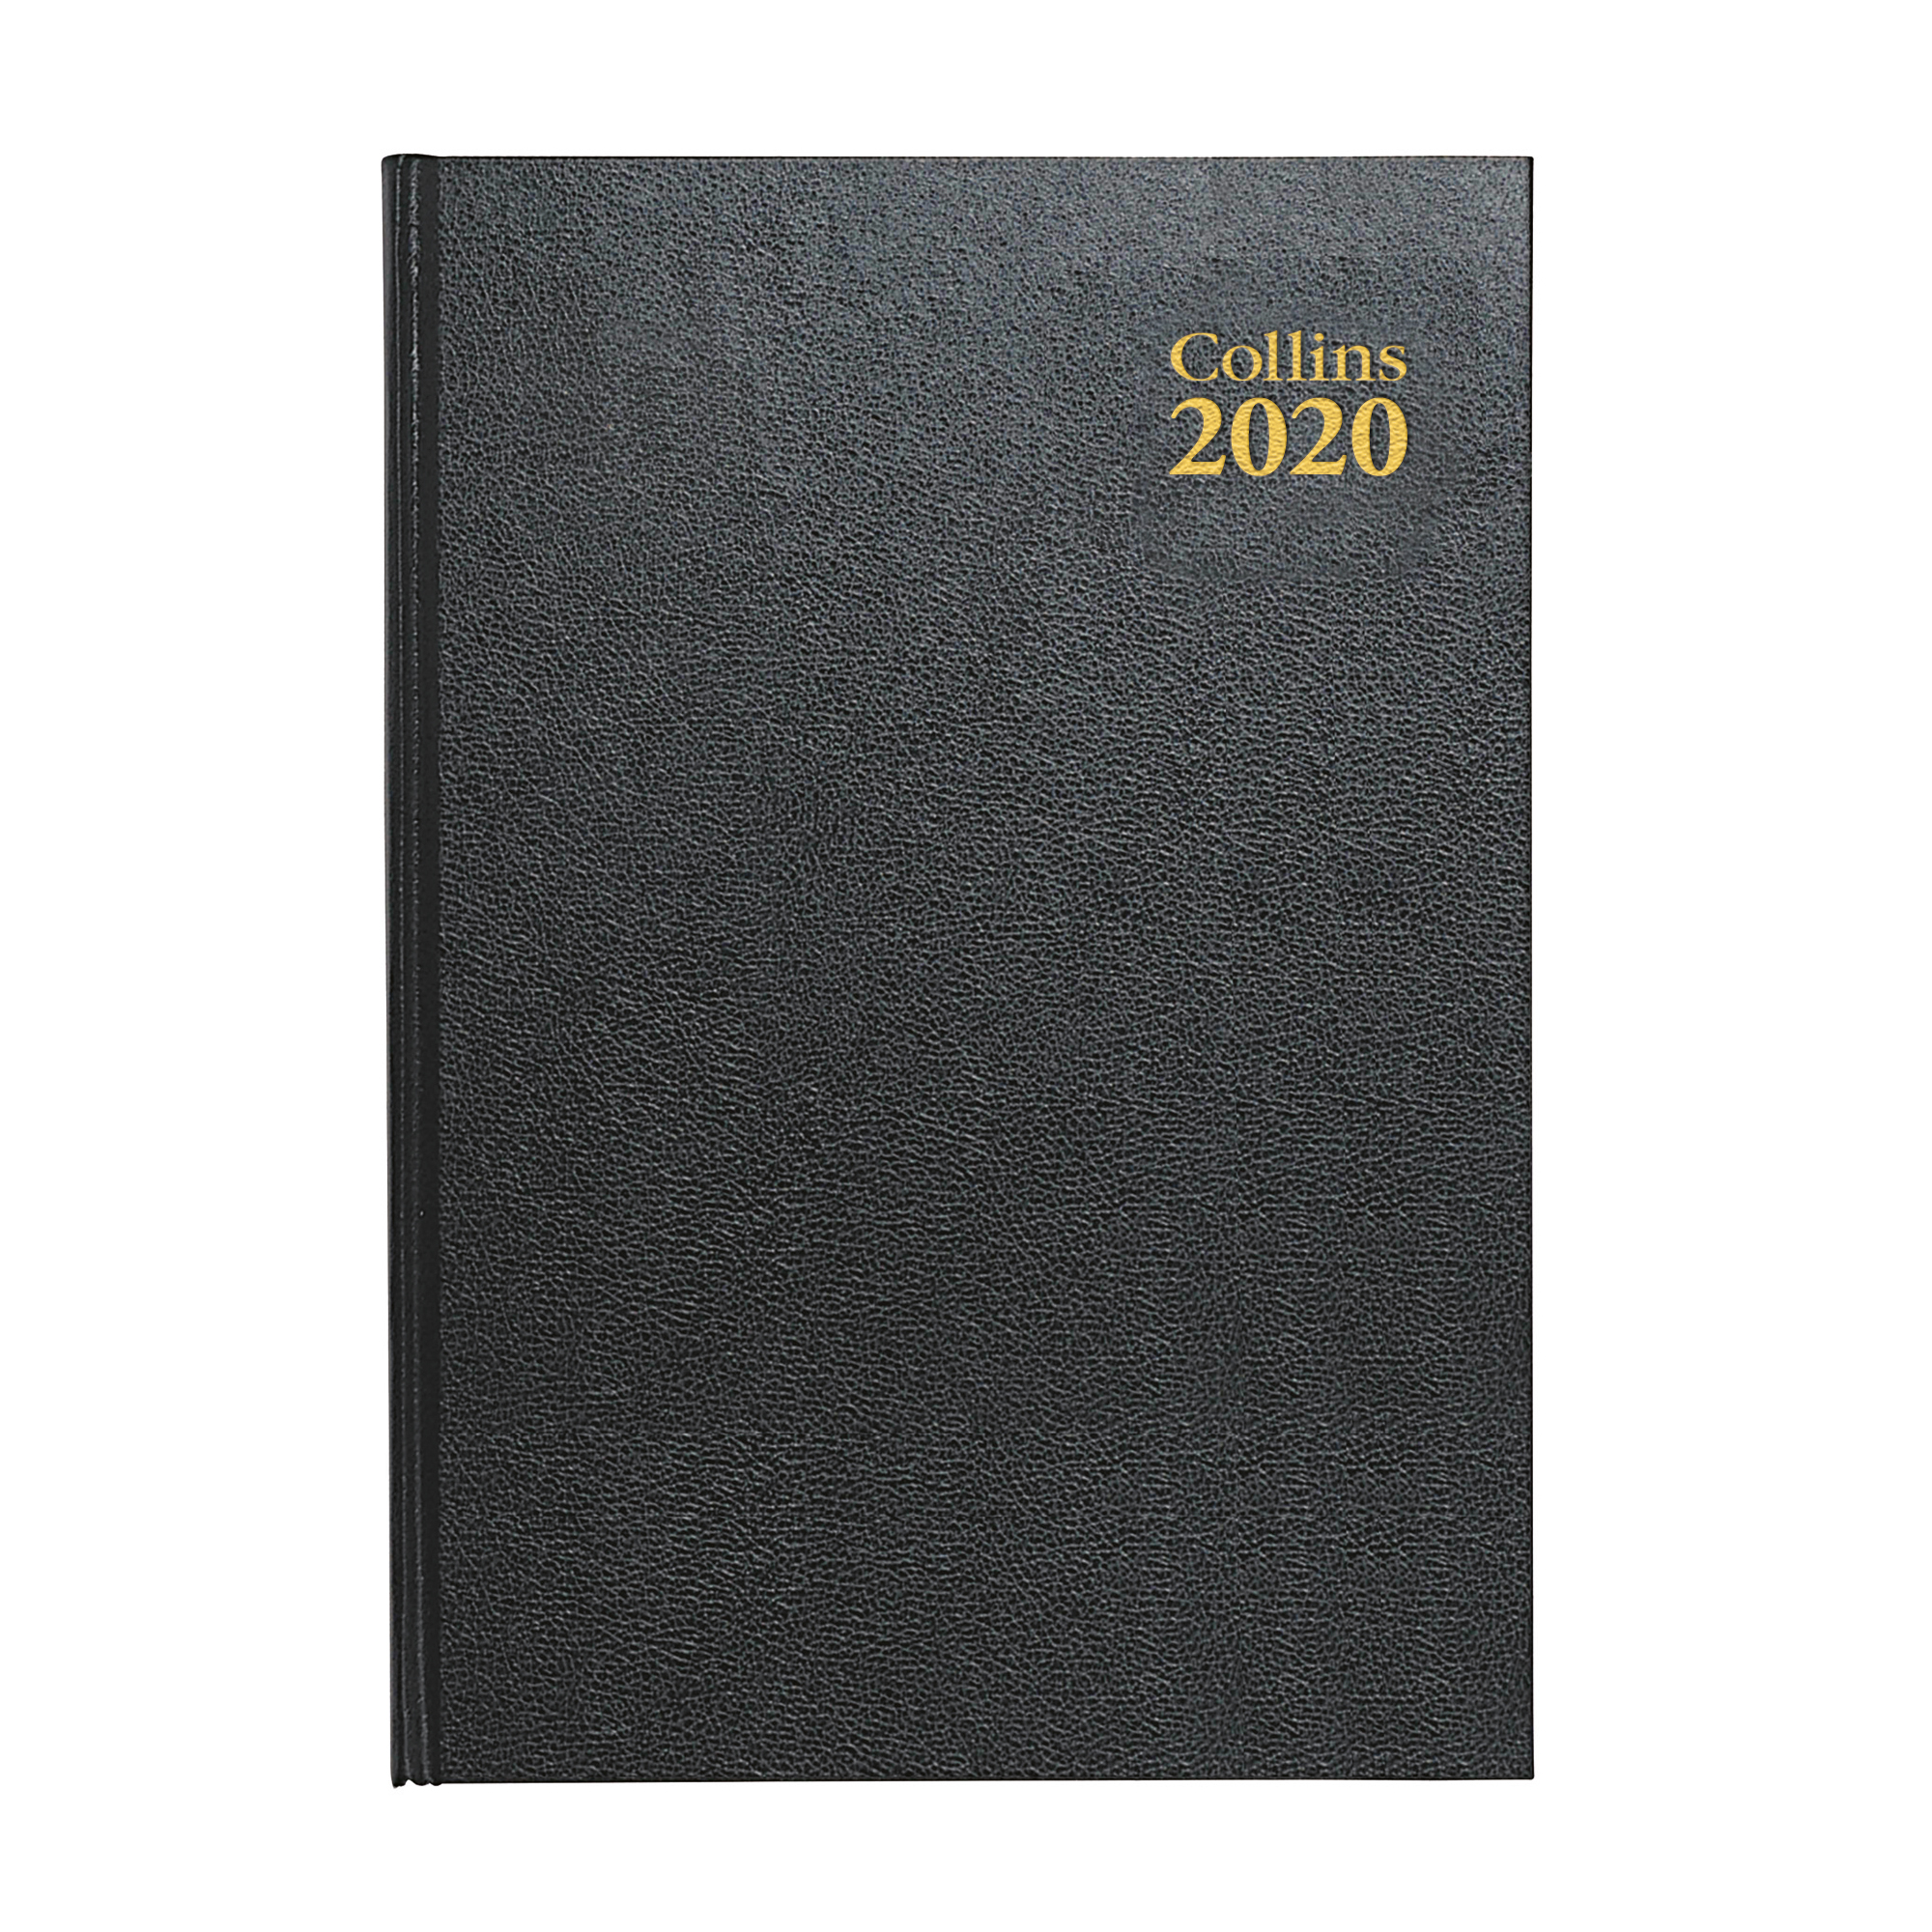 Collins 2020 Desk Diary 2 pages per day Sewn Binding A4 297x210mm Black Ref 47 Blk 2020